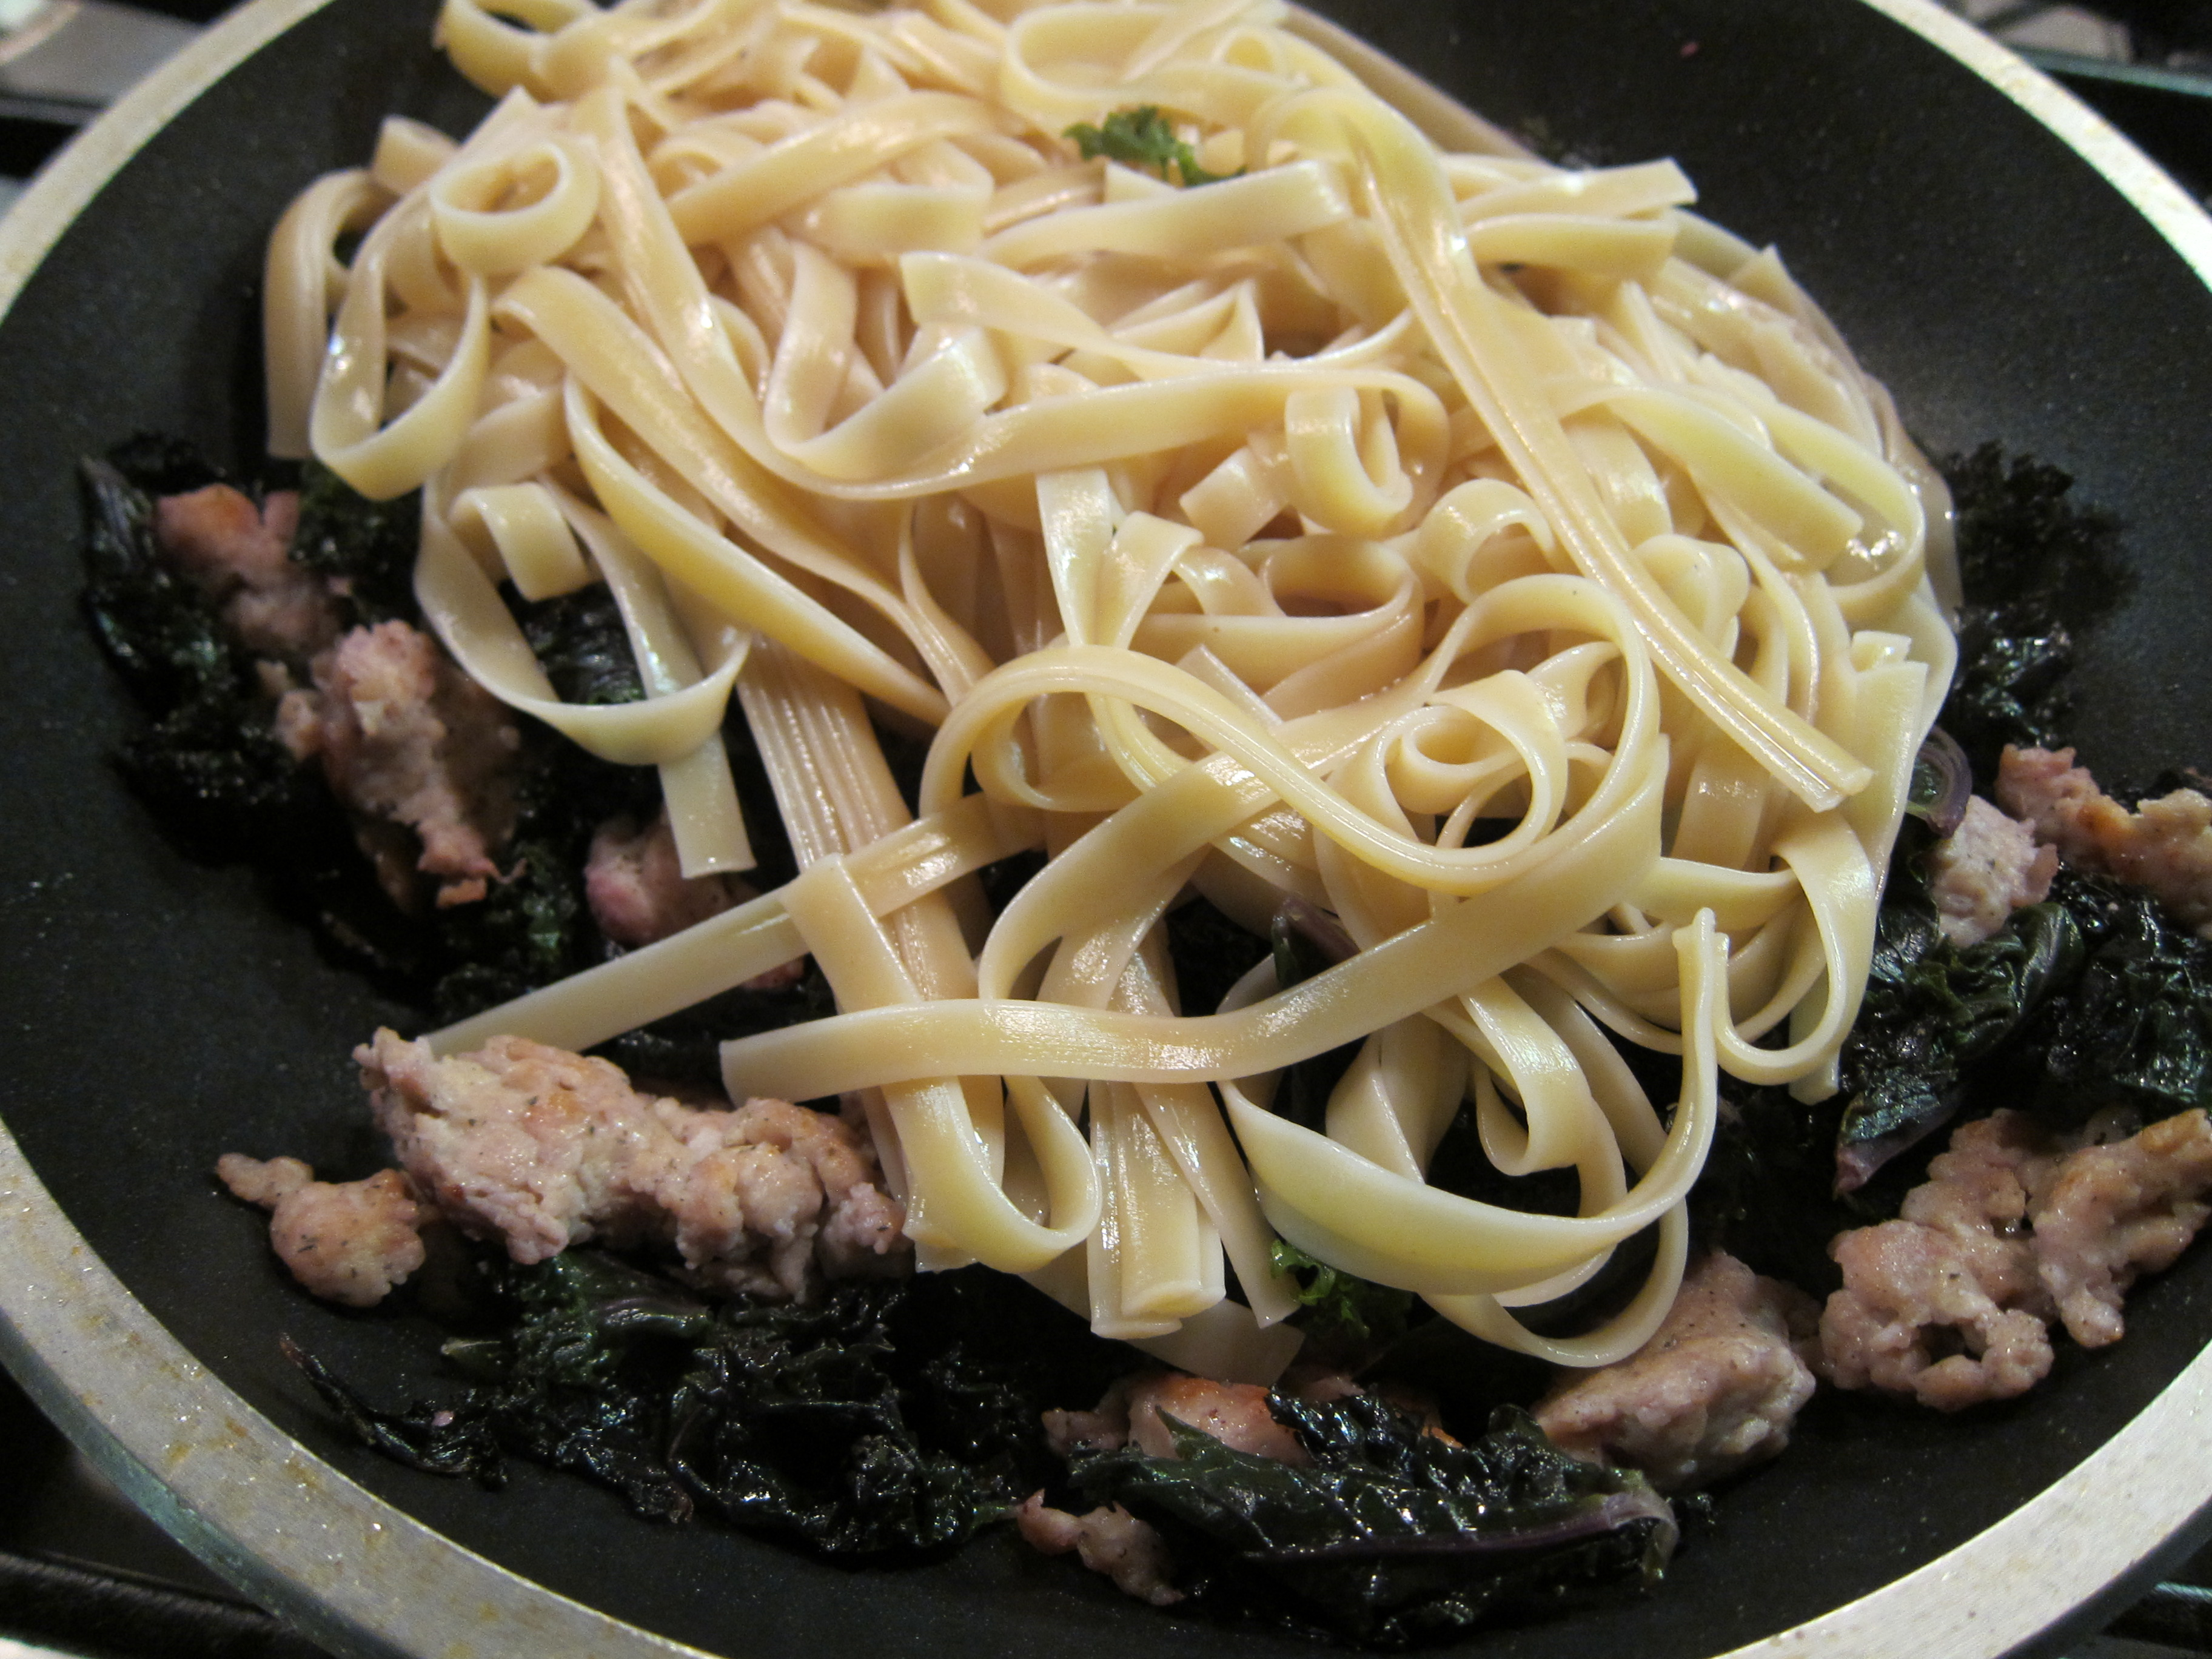 Fettuccine with Sausage and Kale | Dinner With Weijia